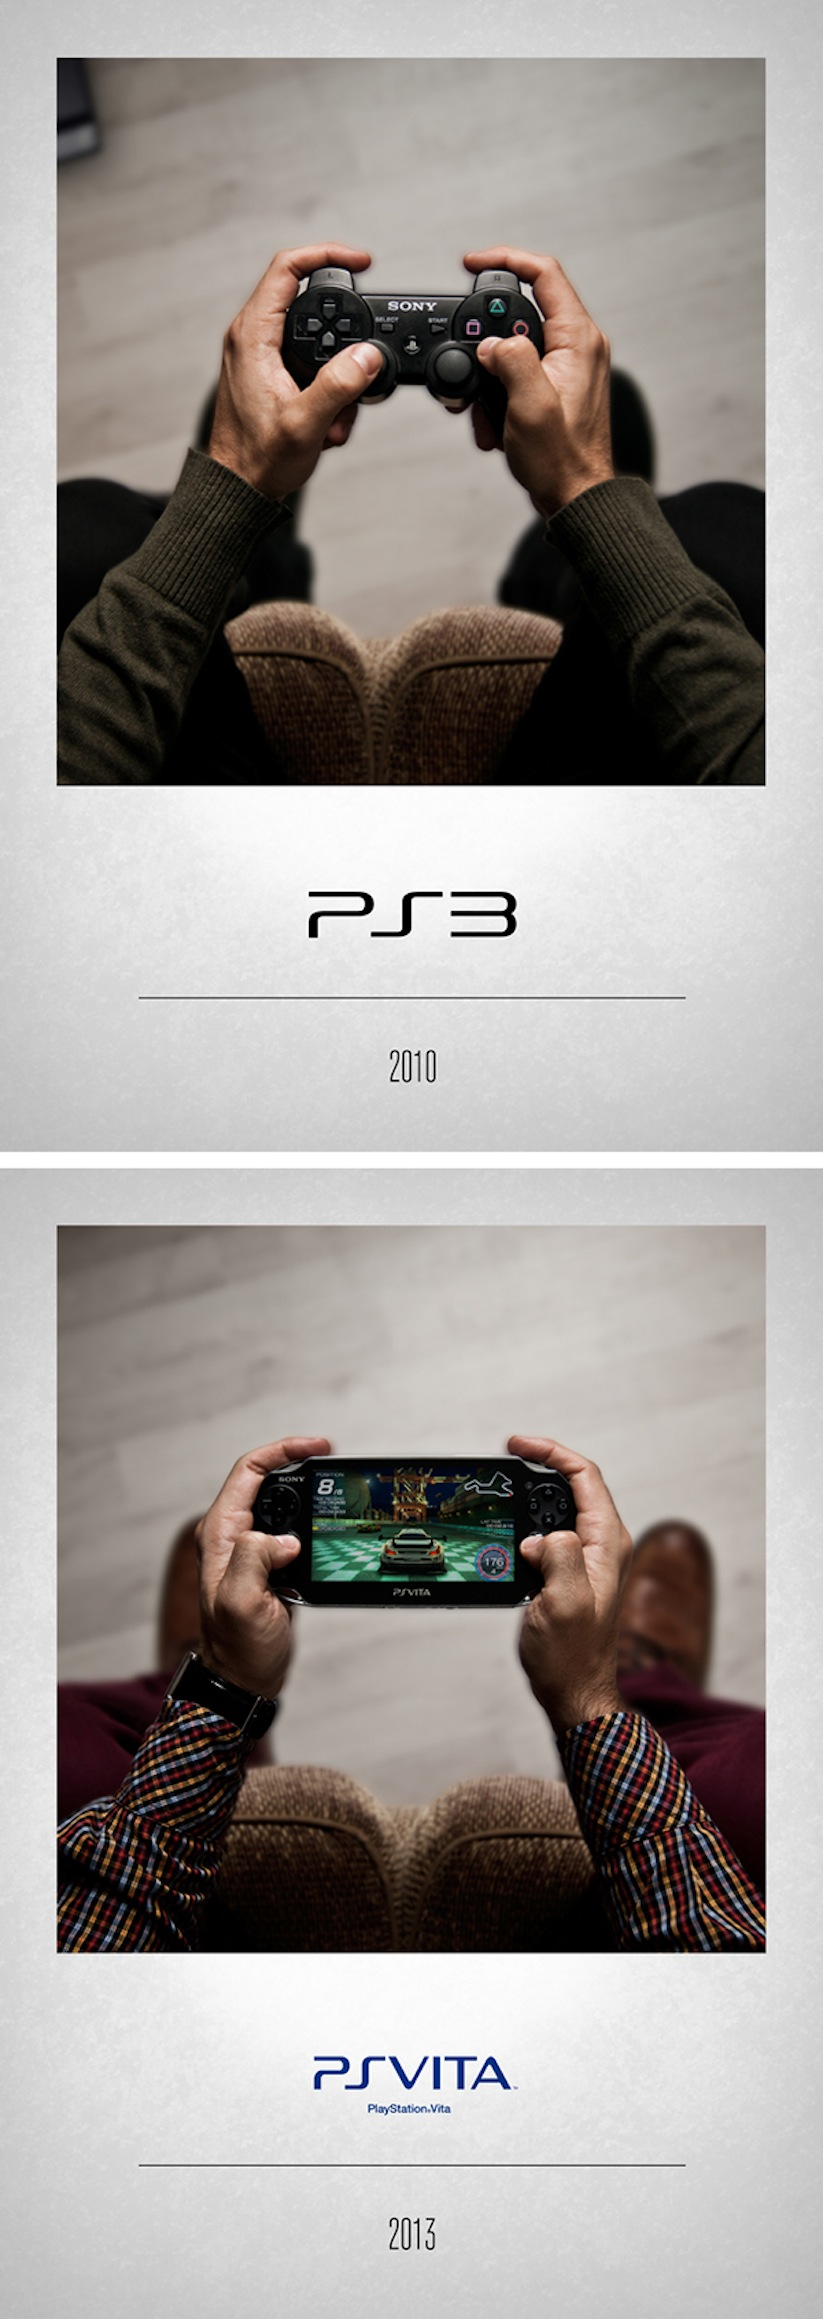 video games history_javier laspiur_6